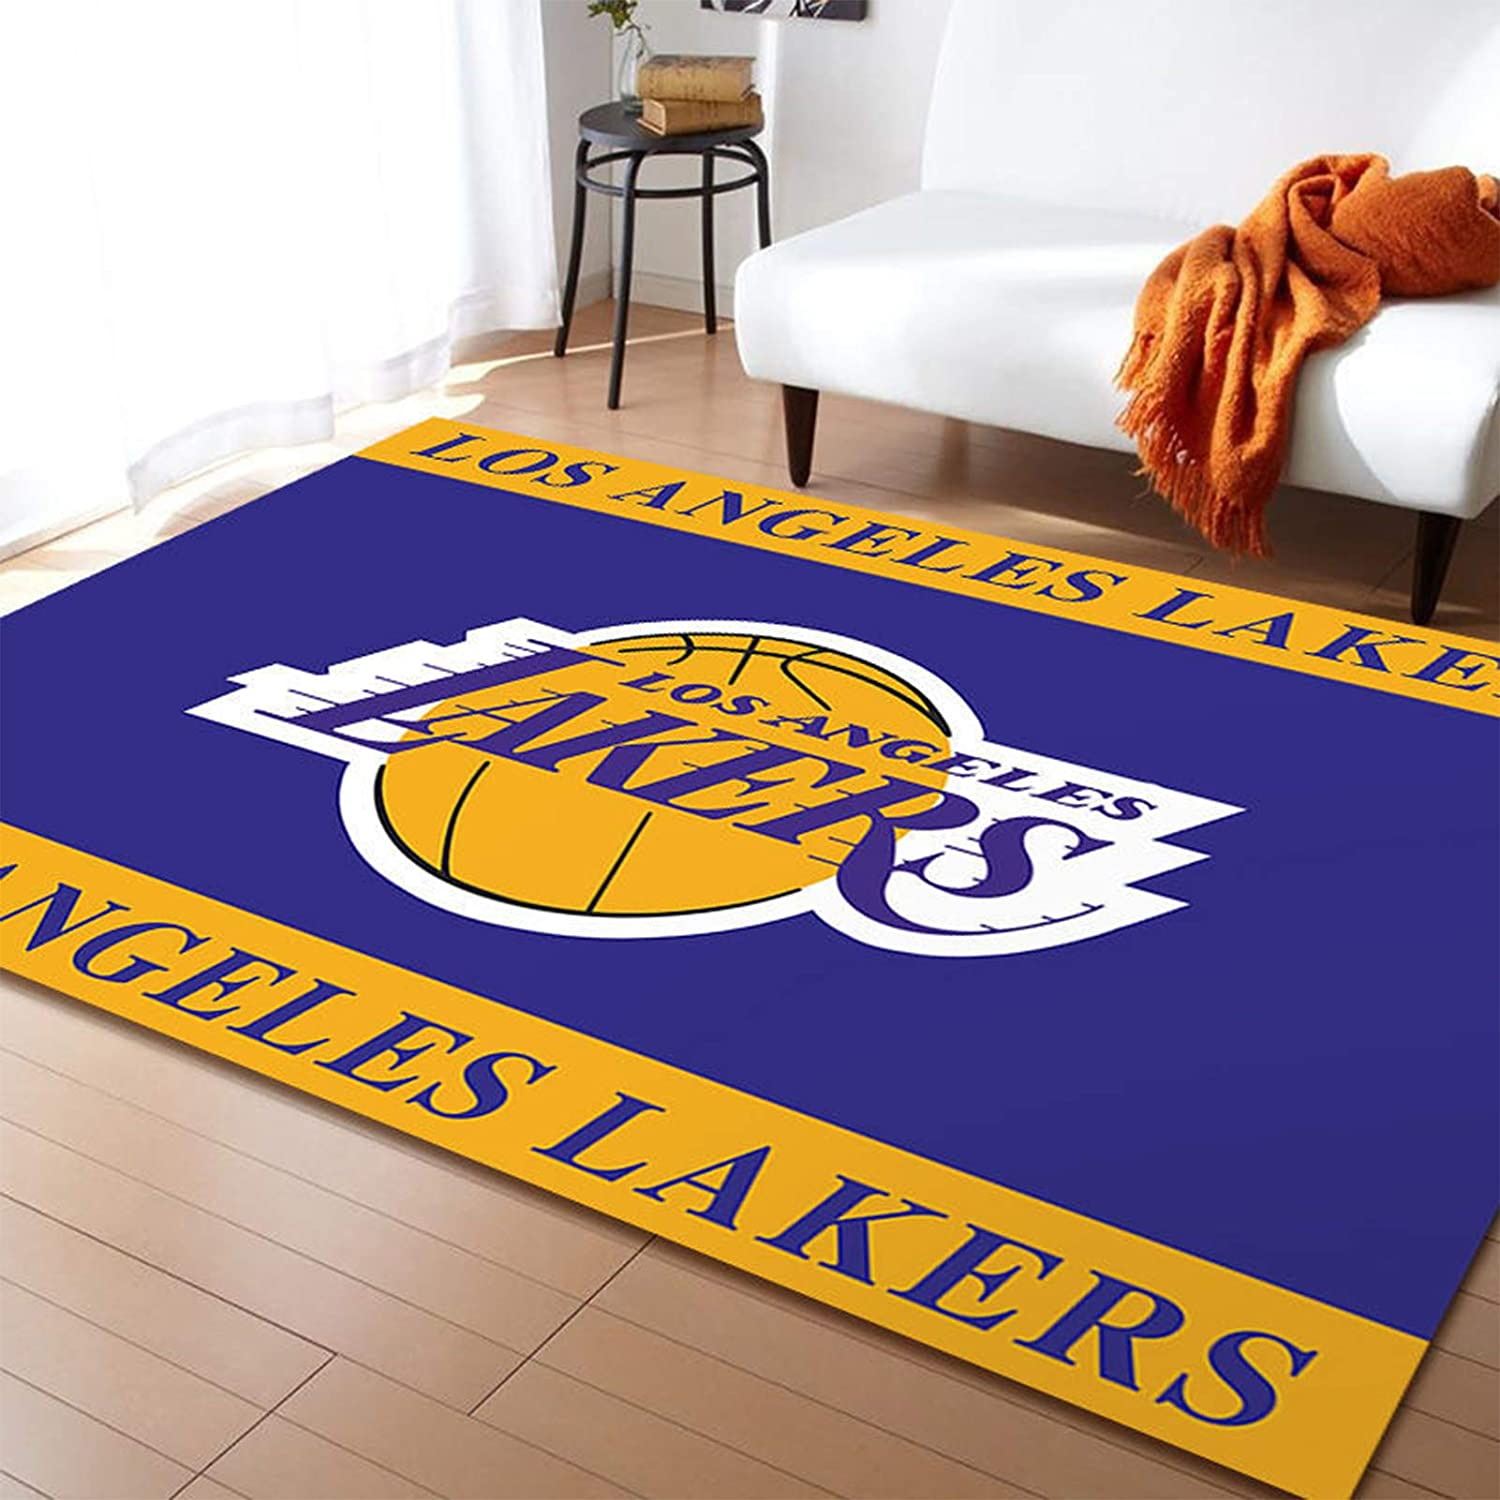 Kids Playroom Or Classroom Rug Door Mat Home Decor 14090 Fdghsx Laker Rug Basketball Court Sports Theme Area Rug For Teens Bedroom Rugs Home Kitchen Emosens Fr